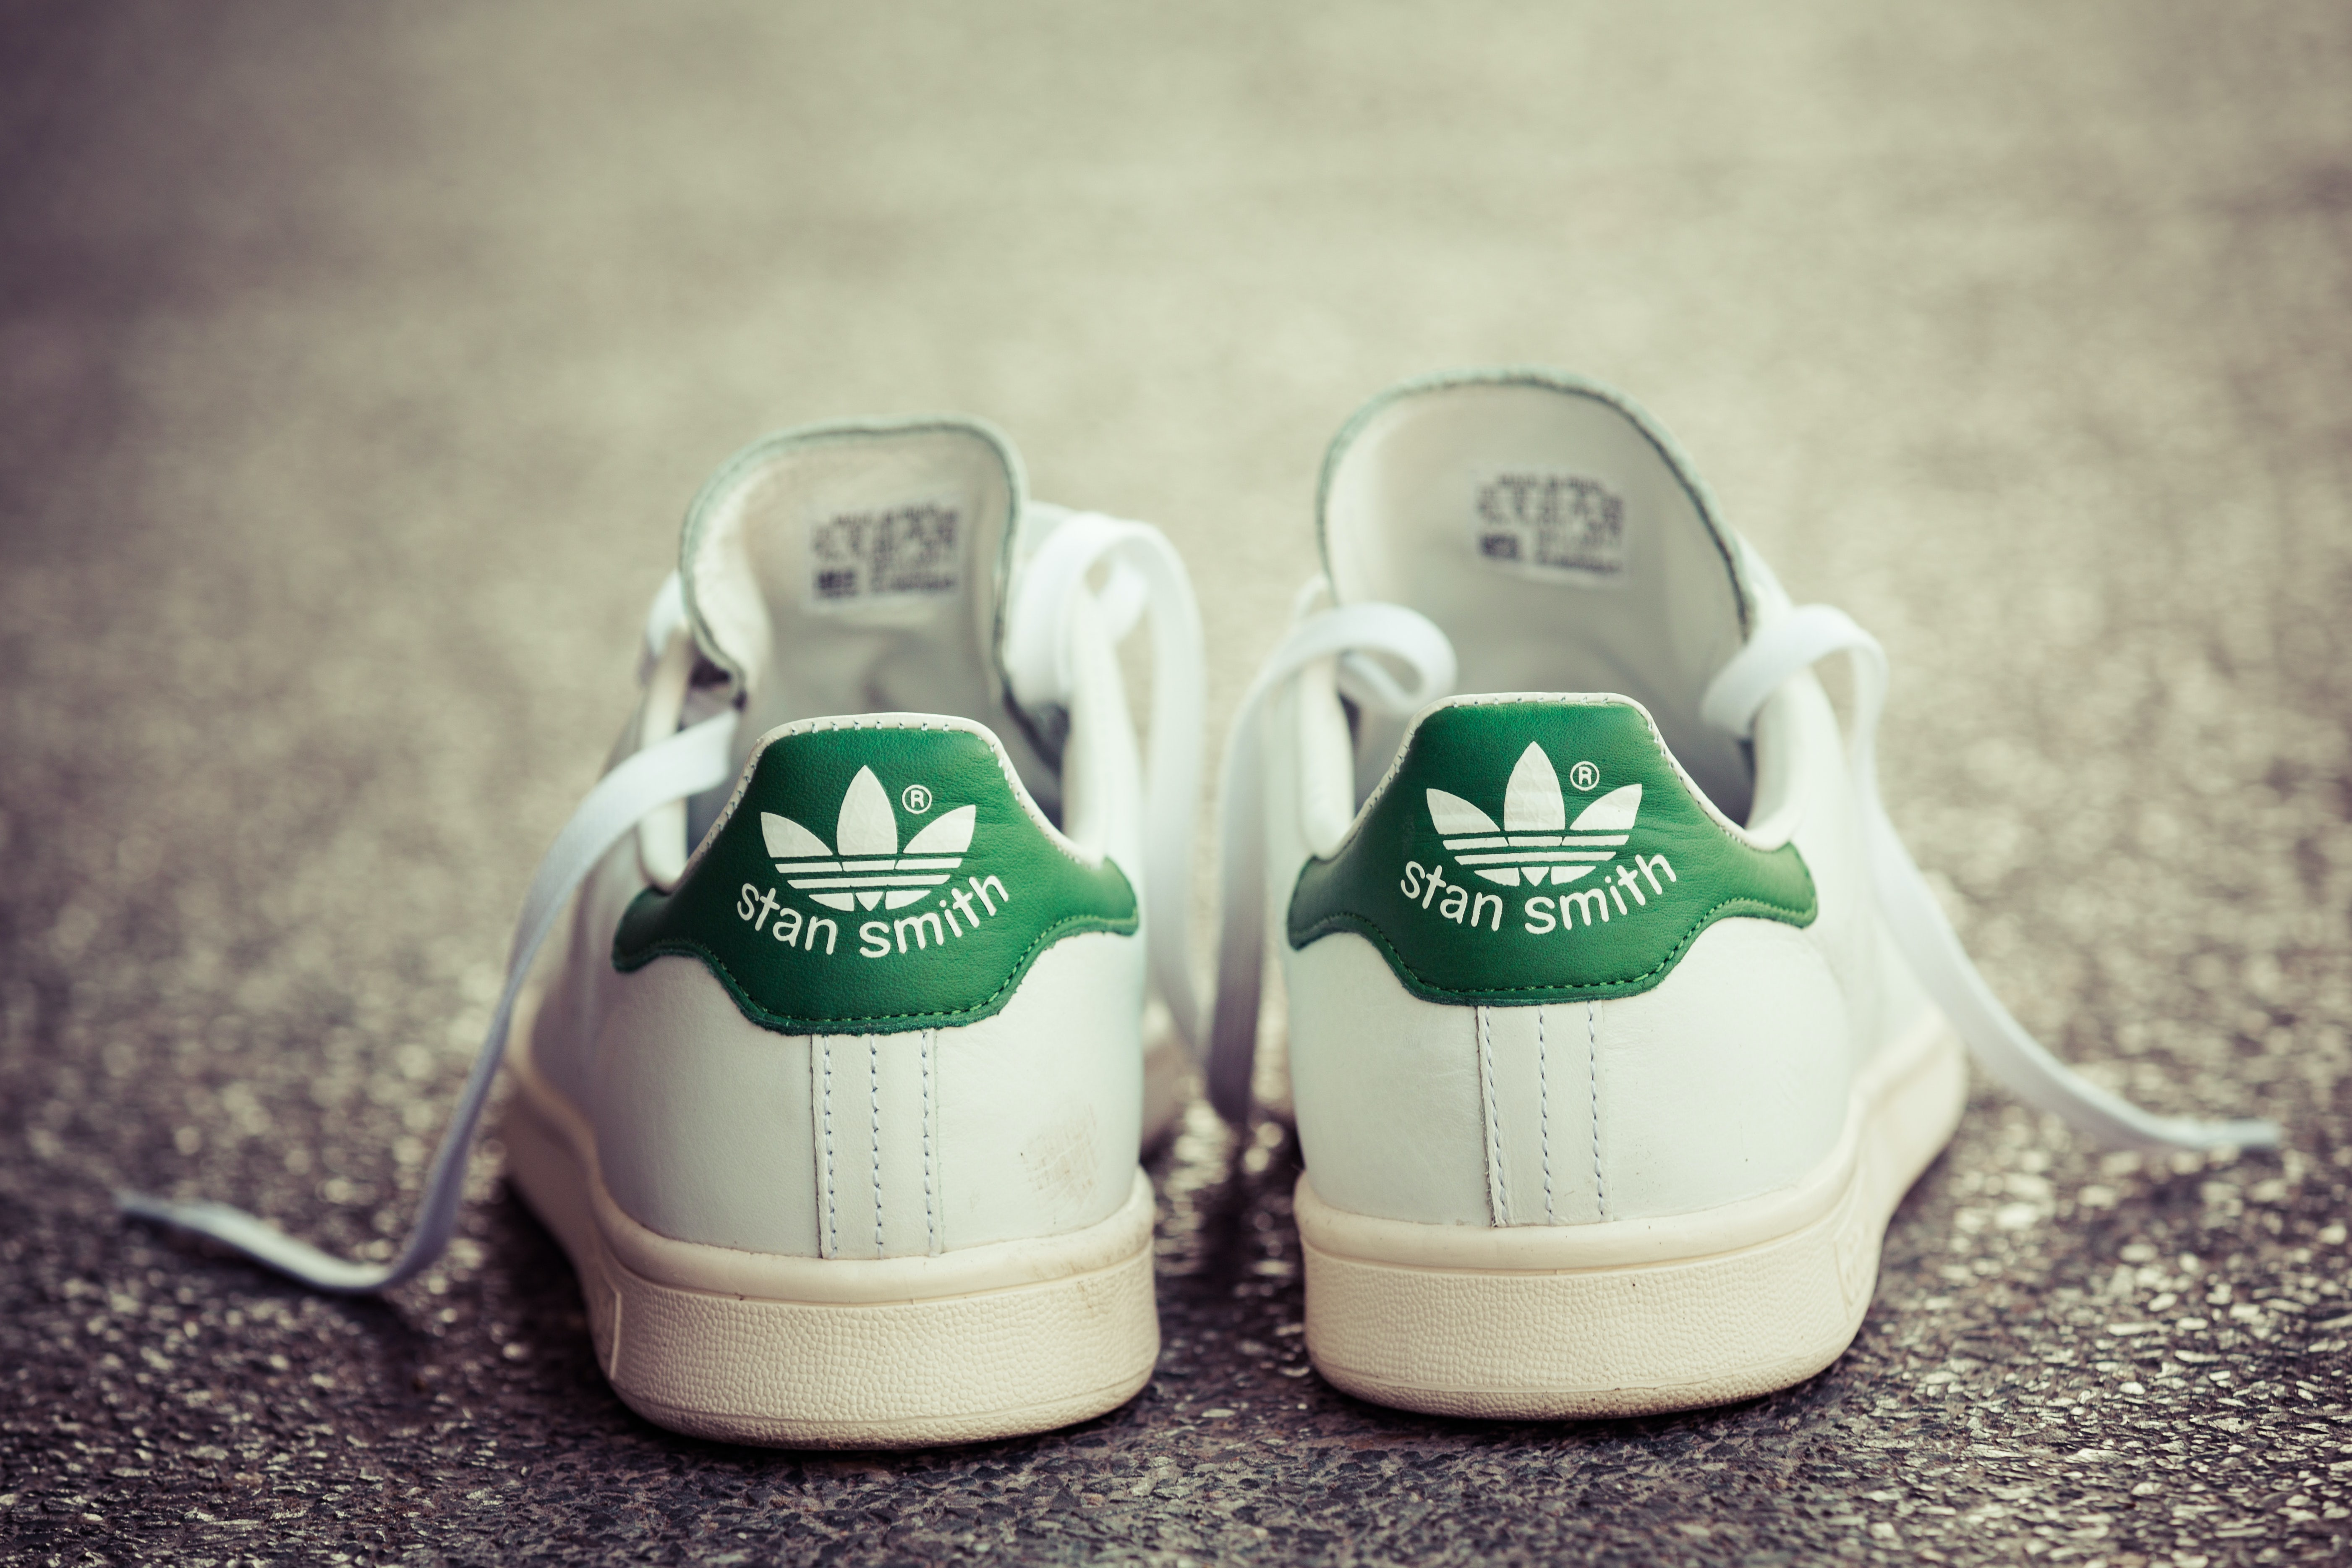 Adidas Stan Smith sneakers | Source: Shutterstock